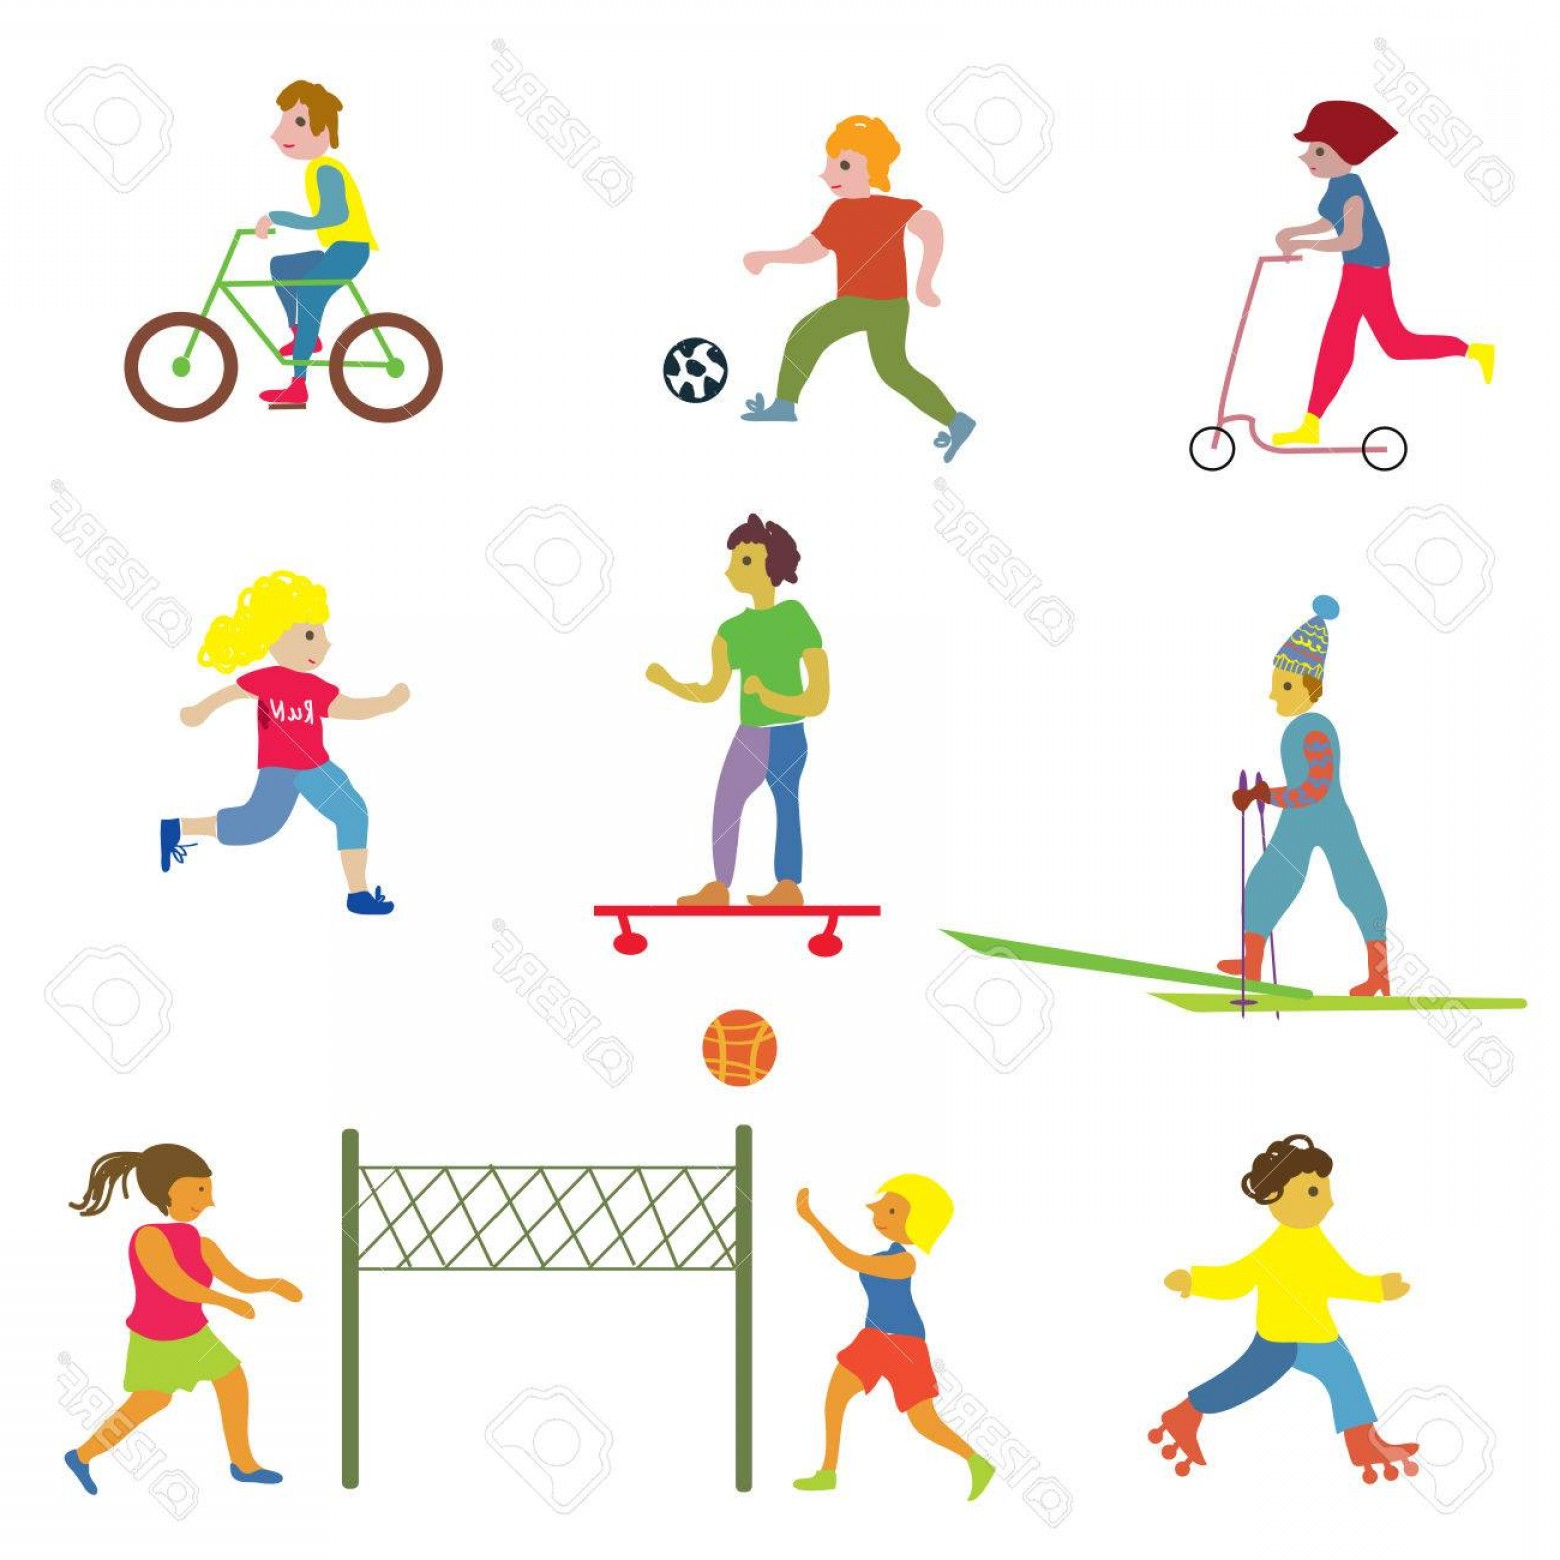 Vector People Free Clip Art: Photostock Vector People Making Different Sports Funny Design Vector Illustrations